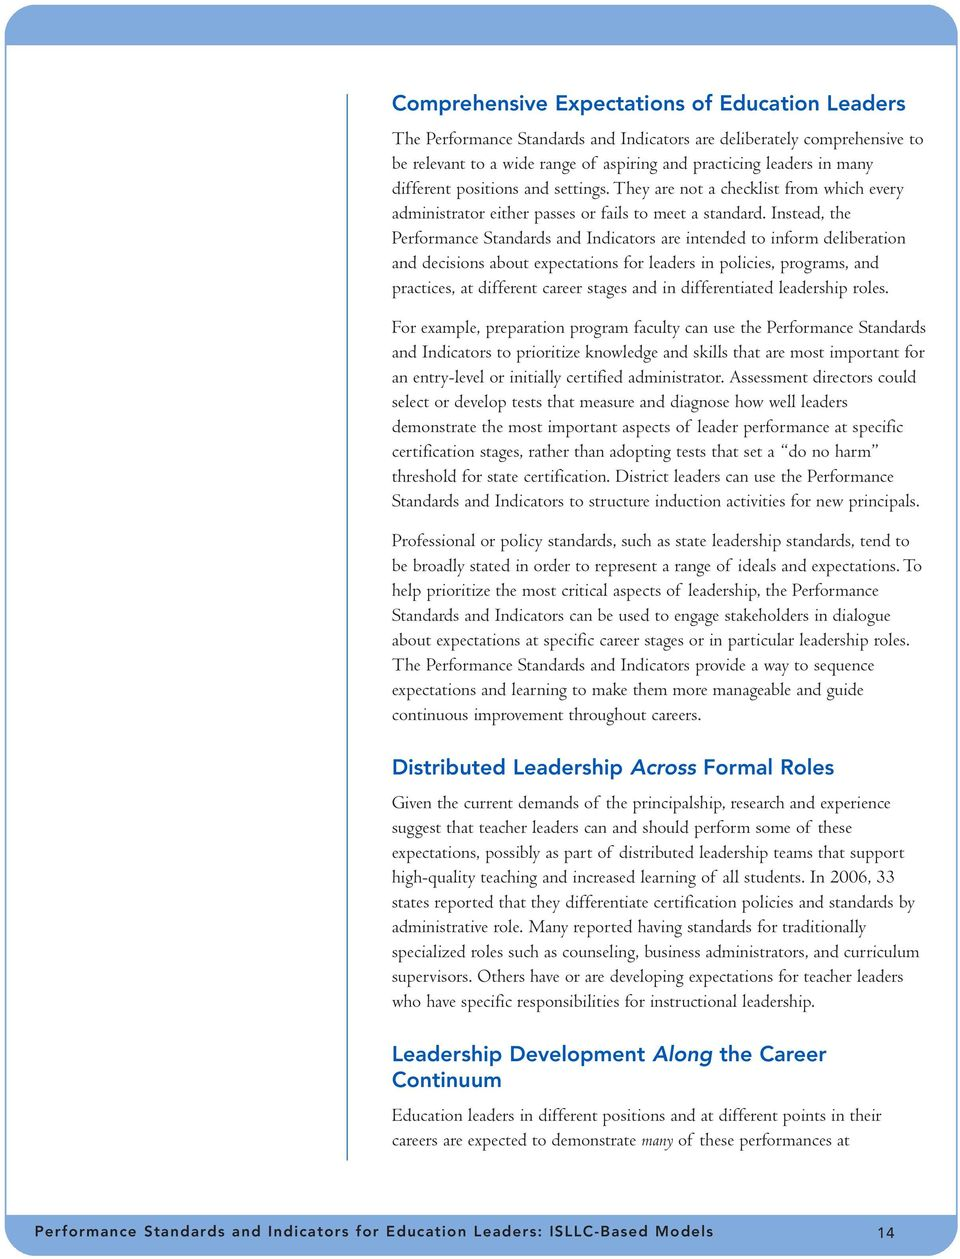 Instead, the Performance Standards and Indicators are intended to inform deliberation and decisions about expectations for leaders in policies, programs, and practices, at different career stages and